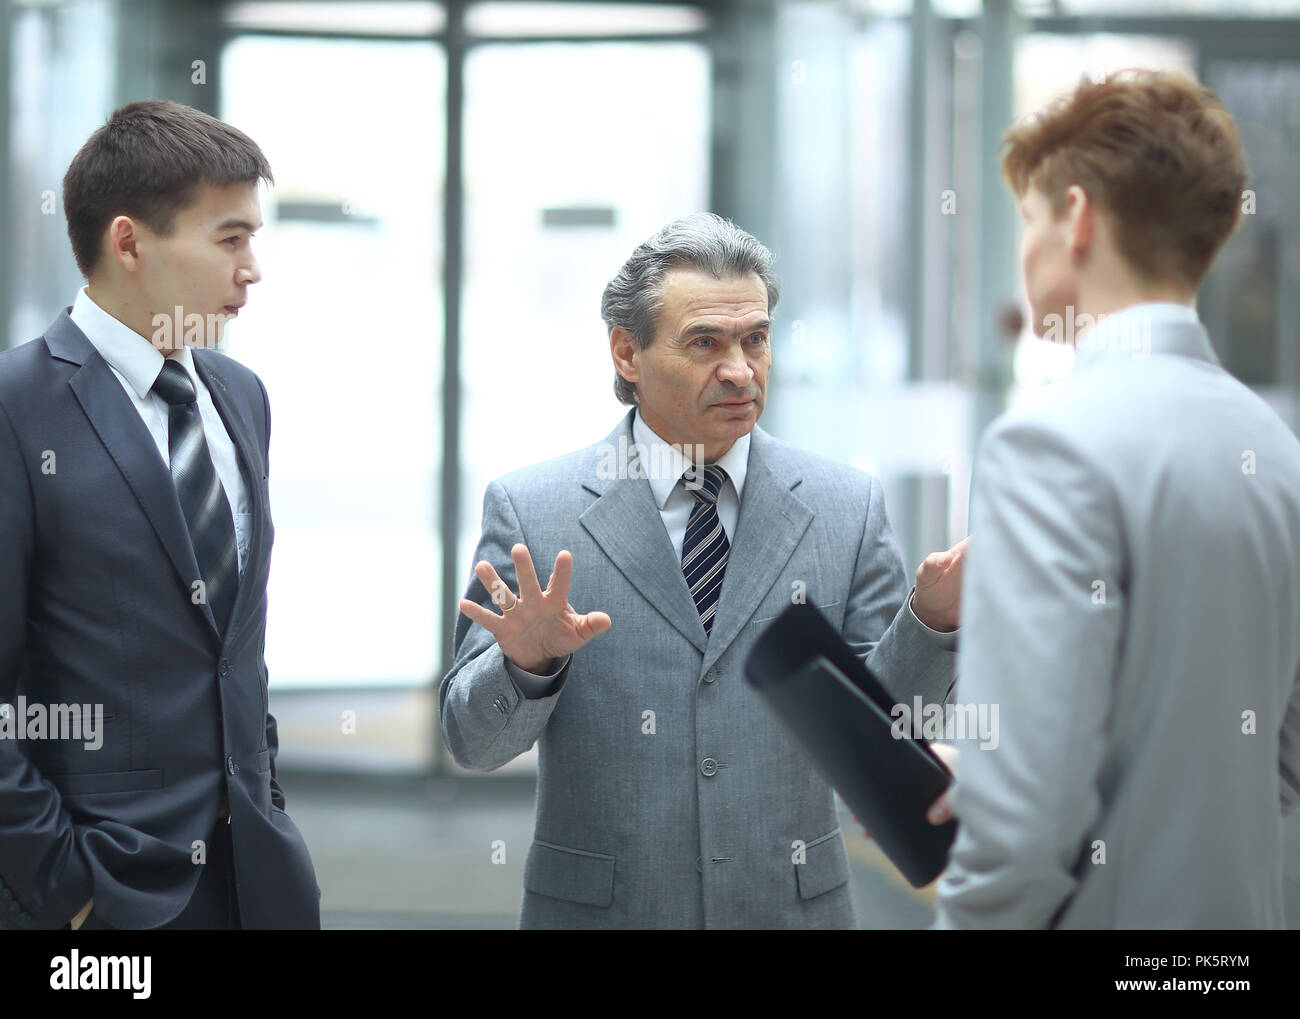 strict boss talking with an employee.photo on blurred office background - Stock Image